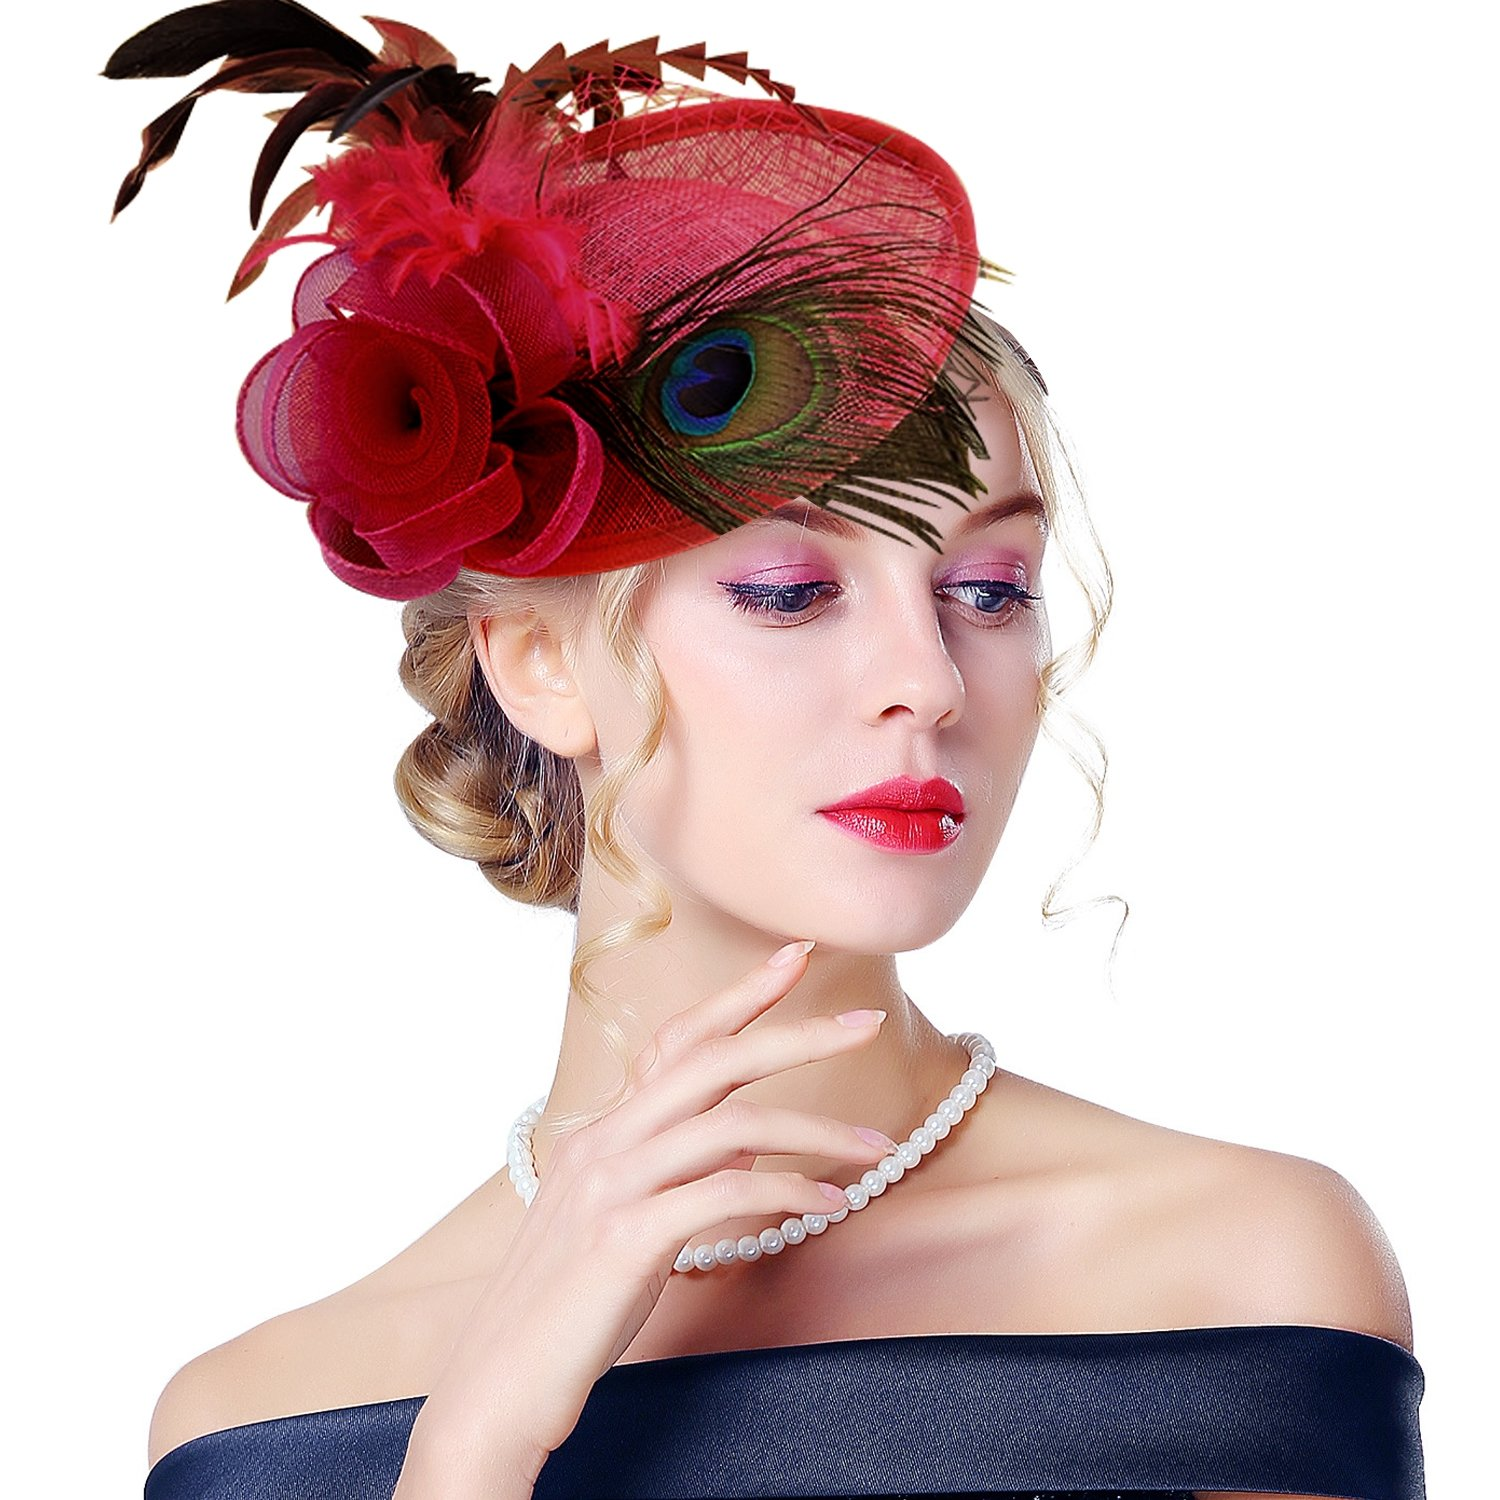 Edith qi Lady Retro Peacock Cocktail Fascinators Sinamay Derby Hats for Wedding Party (Burgundy)